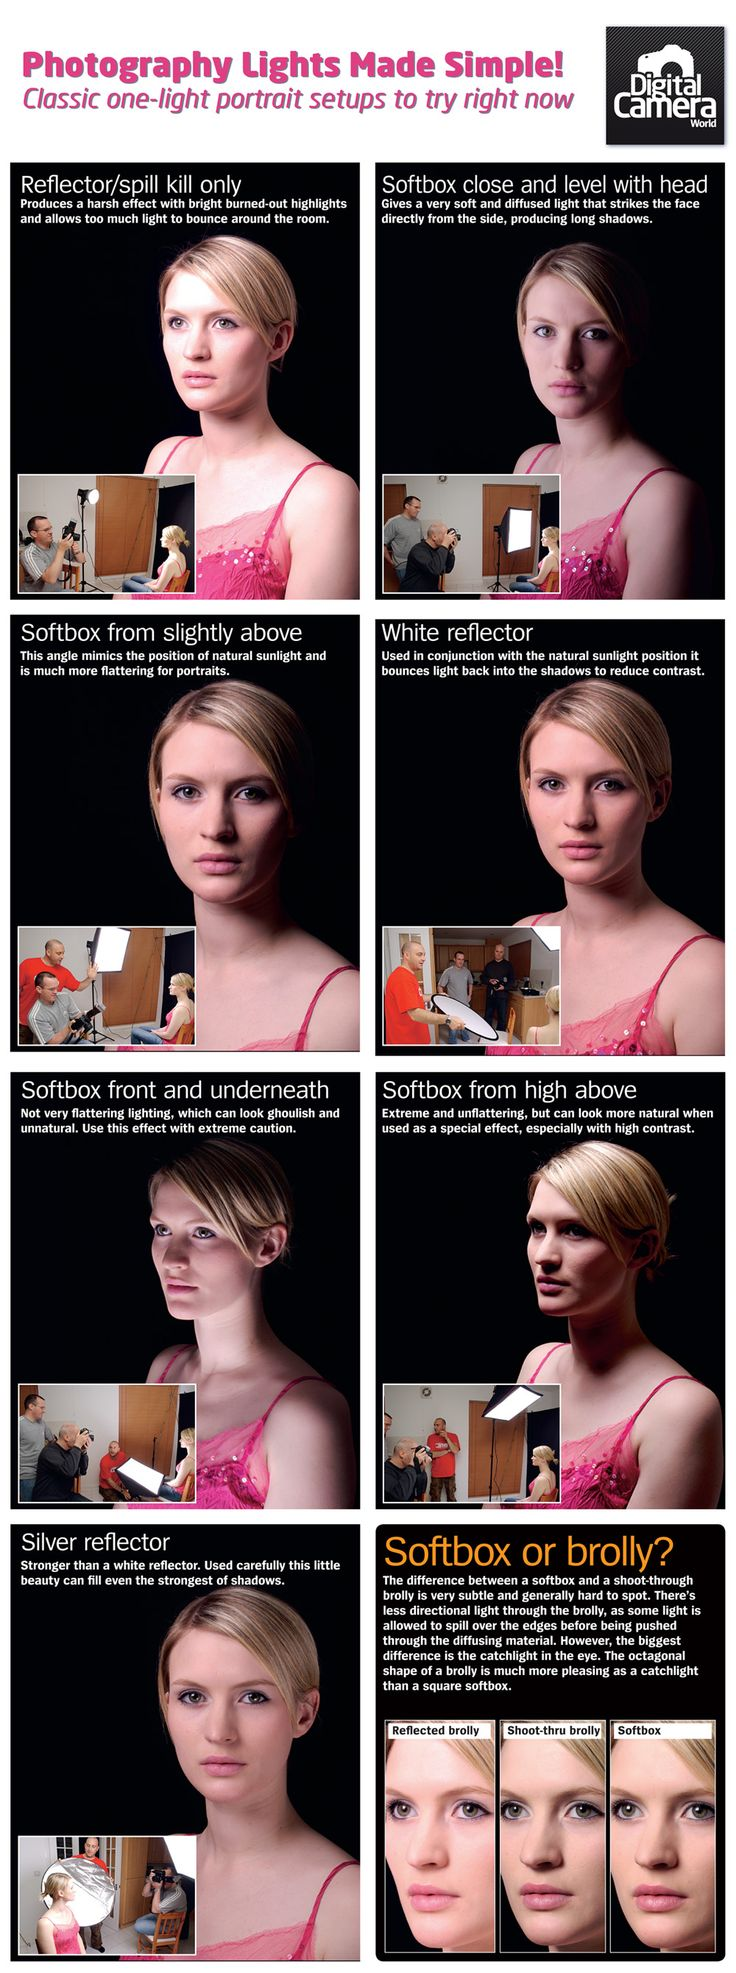 Photography lights made simple: classic one light portrait setups to try right now